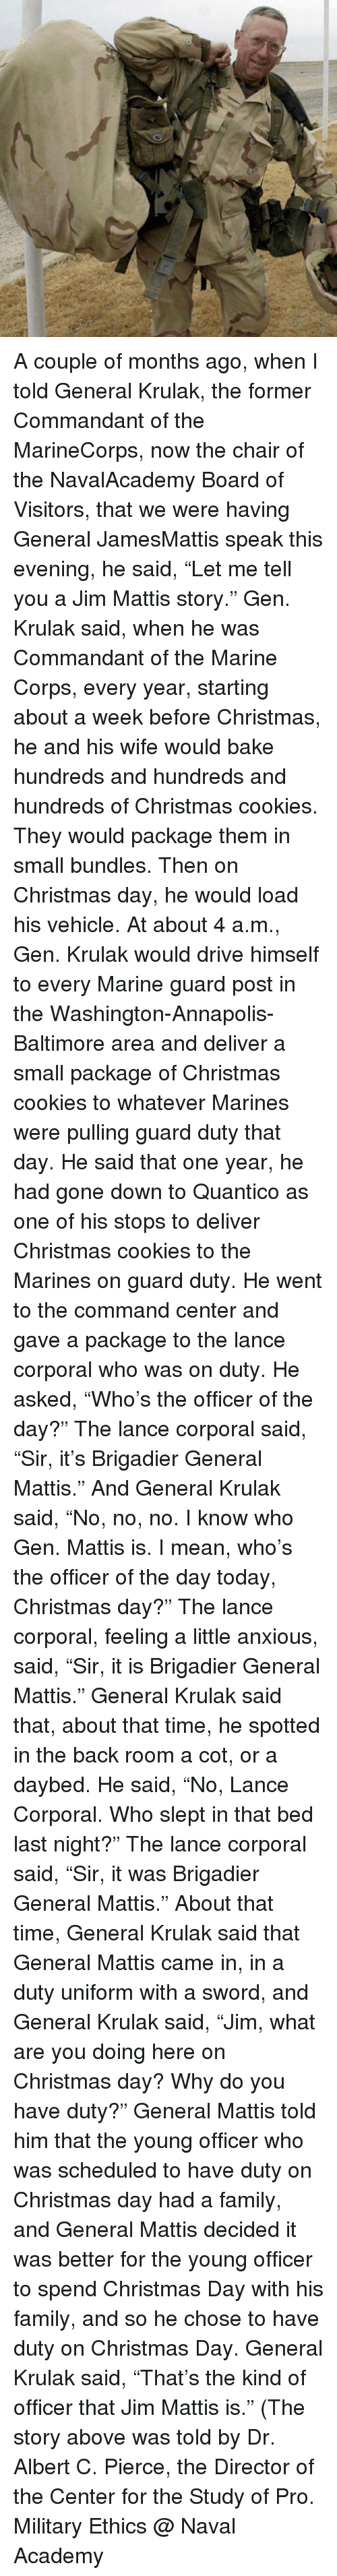 """corporal: A couple of months ago, when I told General Krulak, the former Commandant of the MarineCorps, now the chair of the NavalAcademy Board of Visitors, that we were having General JamesMattis speak this evening, he said, """"Let me tell you a Jim Mattis story."""" Gen. Krulak said, when he was Commandant of the Marine Corps, every year, starting about a week before Christmas, he and his wife would bake hundreds and hundreds and hundreds of Christmas cookies. They would package them in small bundles. Then on Christmas day, he would load his vehicle. At about 4 a.m., Gen. Krulak would drive himself to every Marine guard post in the Washington-Annapolis-Baltimore area and deliver a small package of Christmas cookies to whatever Marines were pulling guard duty that day. He said that one year, he had gone down to Quantico as one of his stops to deliver Christmas cookies to the Marines on guard duty. He went to the command center and gave a package to the lance corporal who was on duty. He asked, """"Who's the officer of the day?"""" The lance corporal said, """"Sir, it's Brigadier General Mattis."""" And General Krulak said, """"No, no, no. I know who Gen. Mattis is. I mean, who's the officer of the day today, Christmas day?"""" The lance corporal, feeling a little anxious, said, """"Sir, it is Brigadier General Mattis."""" General Krulak said that, about that time, he spotted in the back room a cot, or a daybed. He said, """"No, Lance Corporal. Who slept in that bed last night?"""" The lance corporal said, """"Sir, it was Brigadier General Mattis."""" About that time, General Krulak said that General Mattis came in, in a duty uniform with a sword, and General Krulak said, """"Jim, what are you doing here on Christmas day? Why do you have duty?"""" General Mattis told him that the young officer who was scheduled to have duty on Christmas day had a family, and General Mattis decided it was better for the young officer to spend Christmas Day with his family, and so he chose to have duty on Christmas Day. General Kr"""